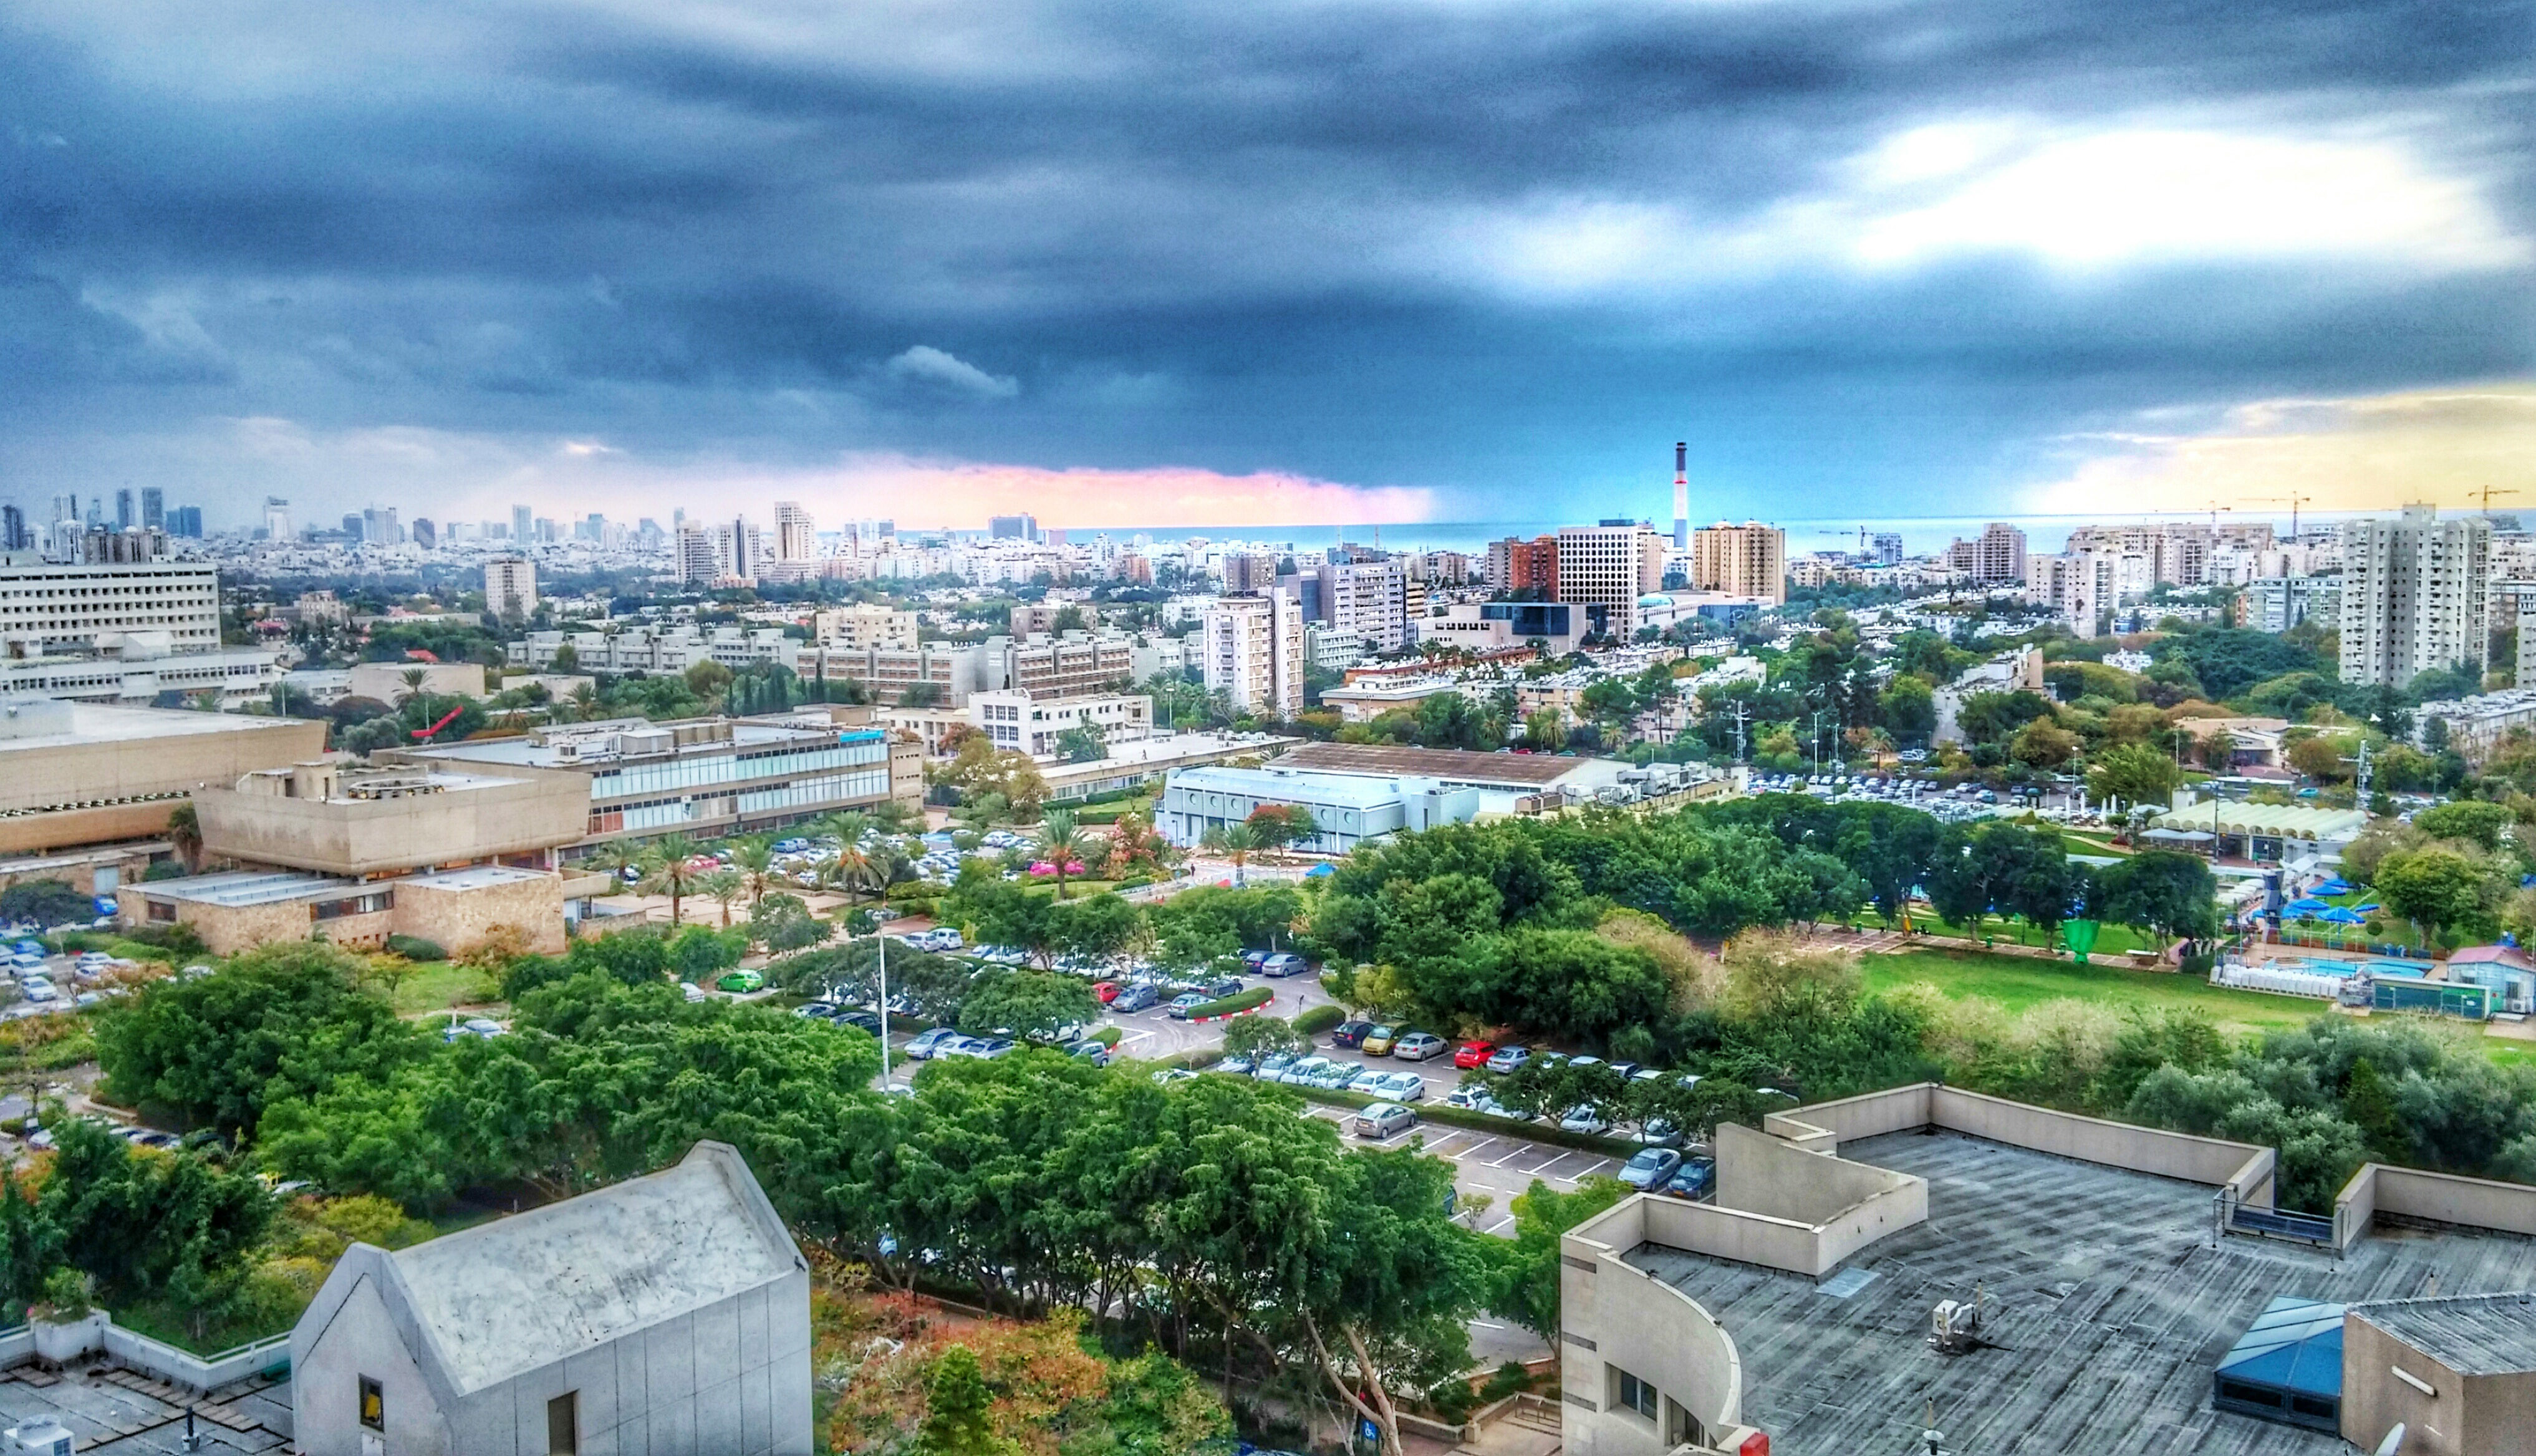 free stock photo of skyline of the cityscape with storm brewing in